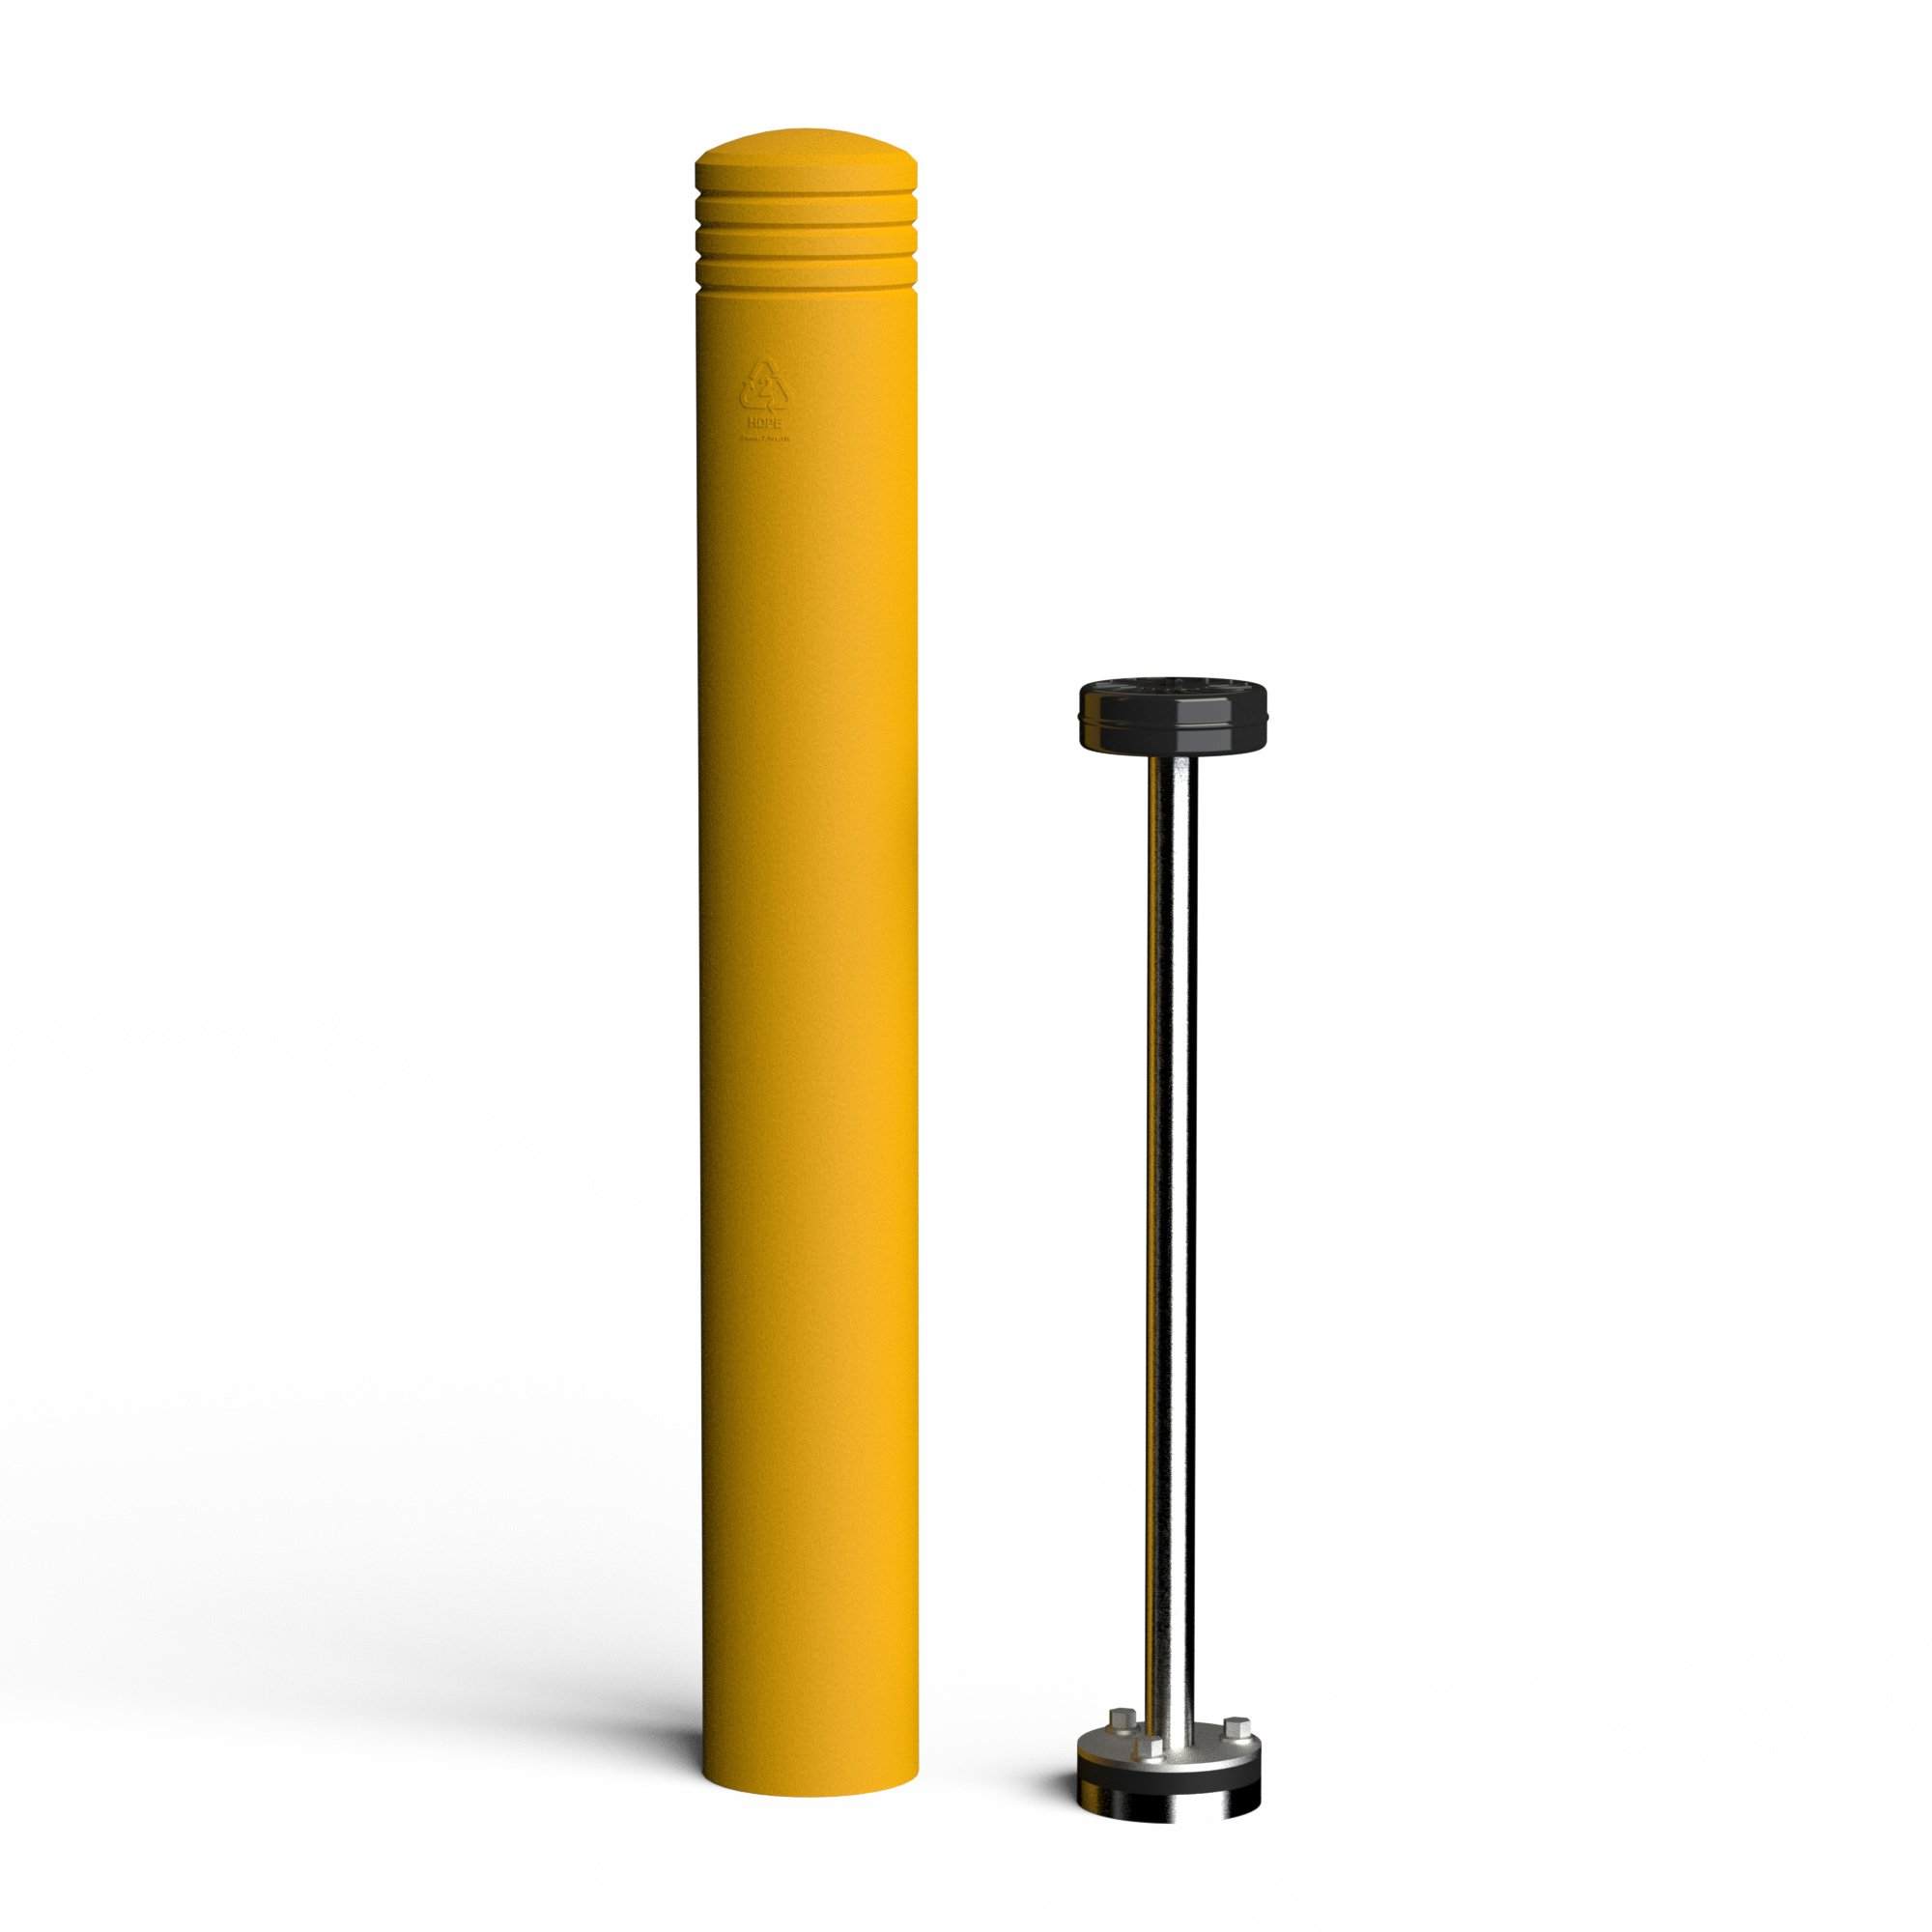 McCue FlexCore Bollard 6, Surface Mounted Shock Absorbing Bollard, CSFCB-6-307, Safety Yellow